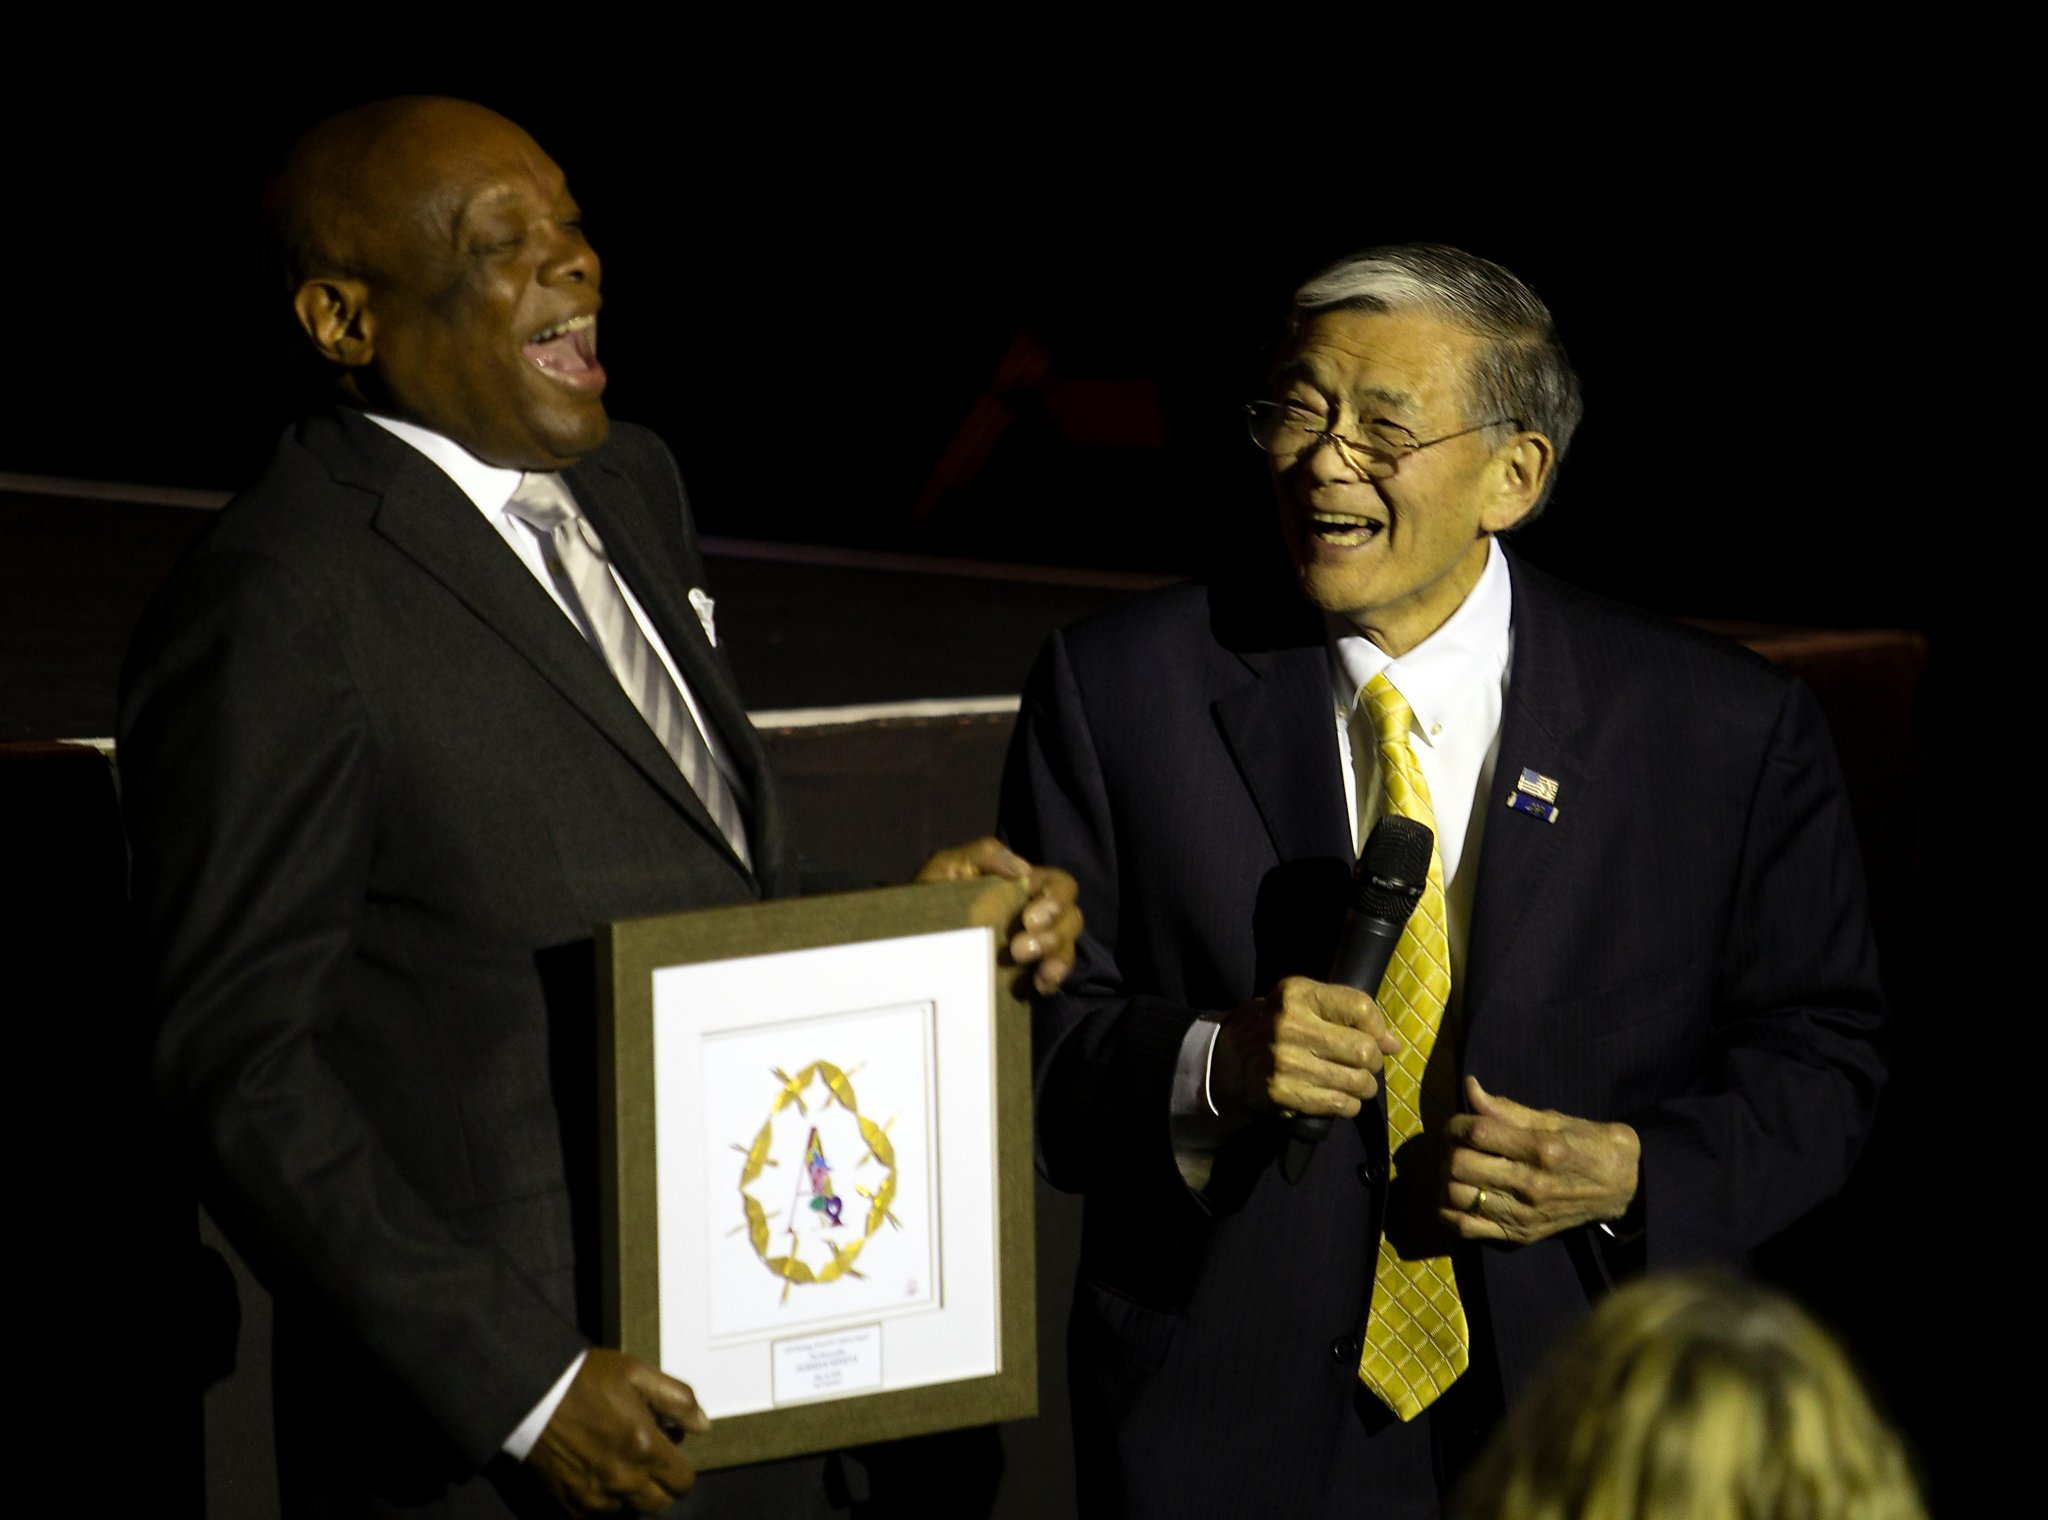 Norman Mineta speaks out at opening night film of S.F. Asian American CAAMFest